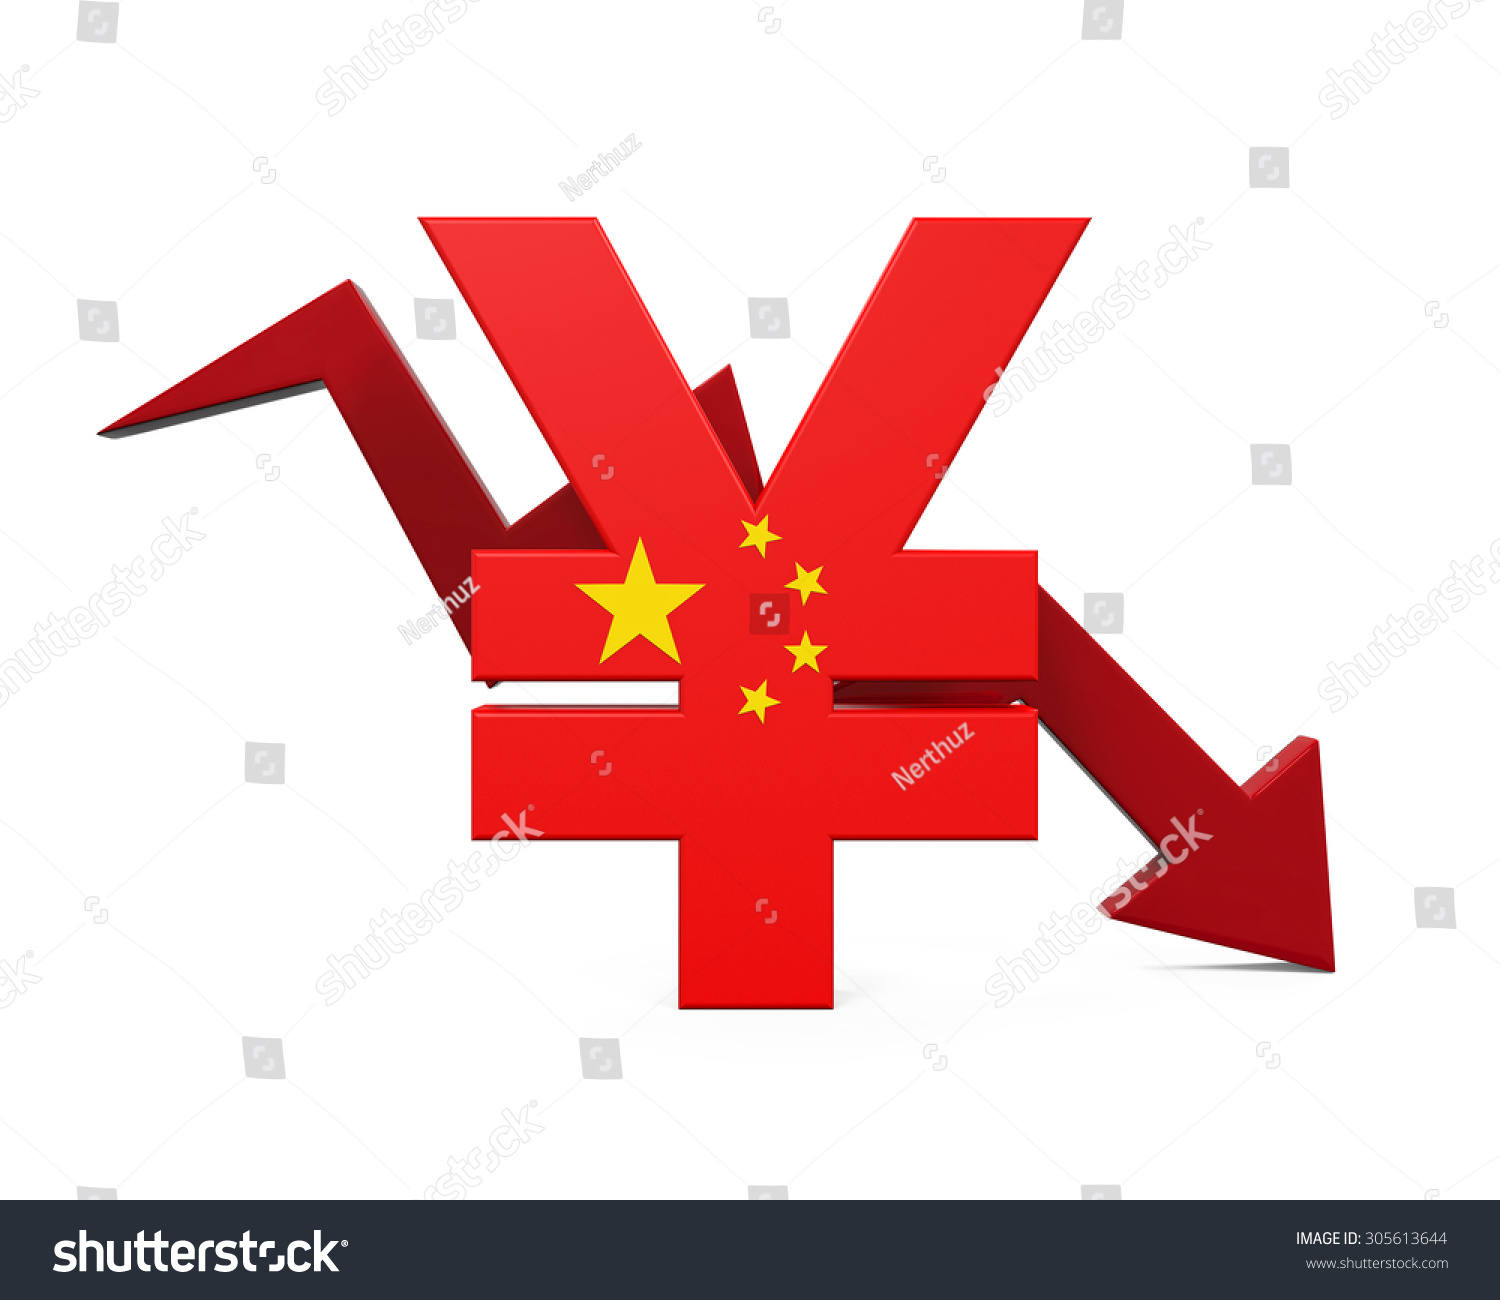 Chinese yuan symbol red arrow stock illustration 305613644 chinese yuan symbol and red arrow buycottarizona Gallery